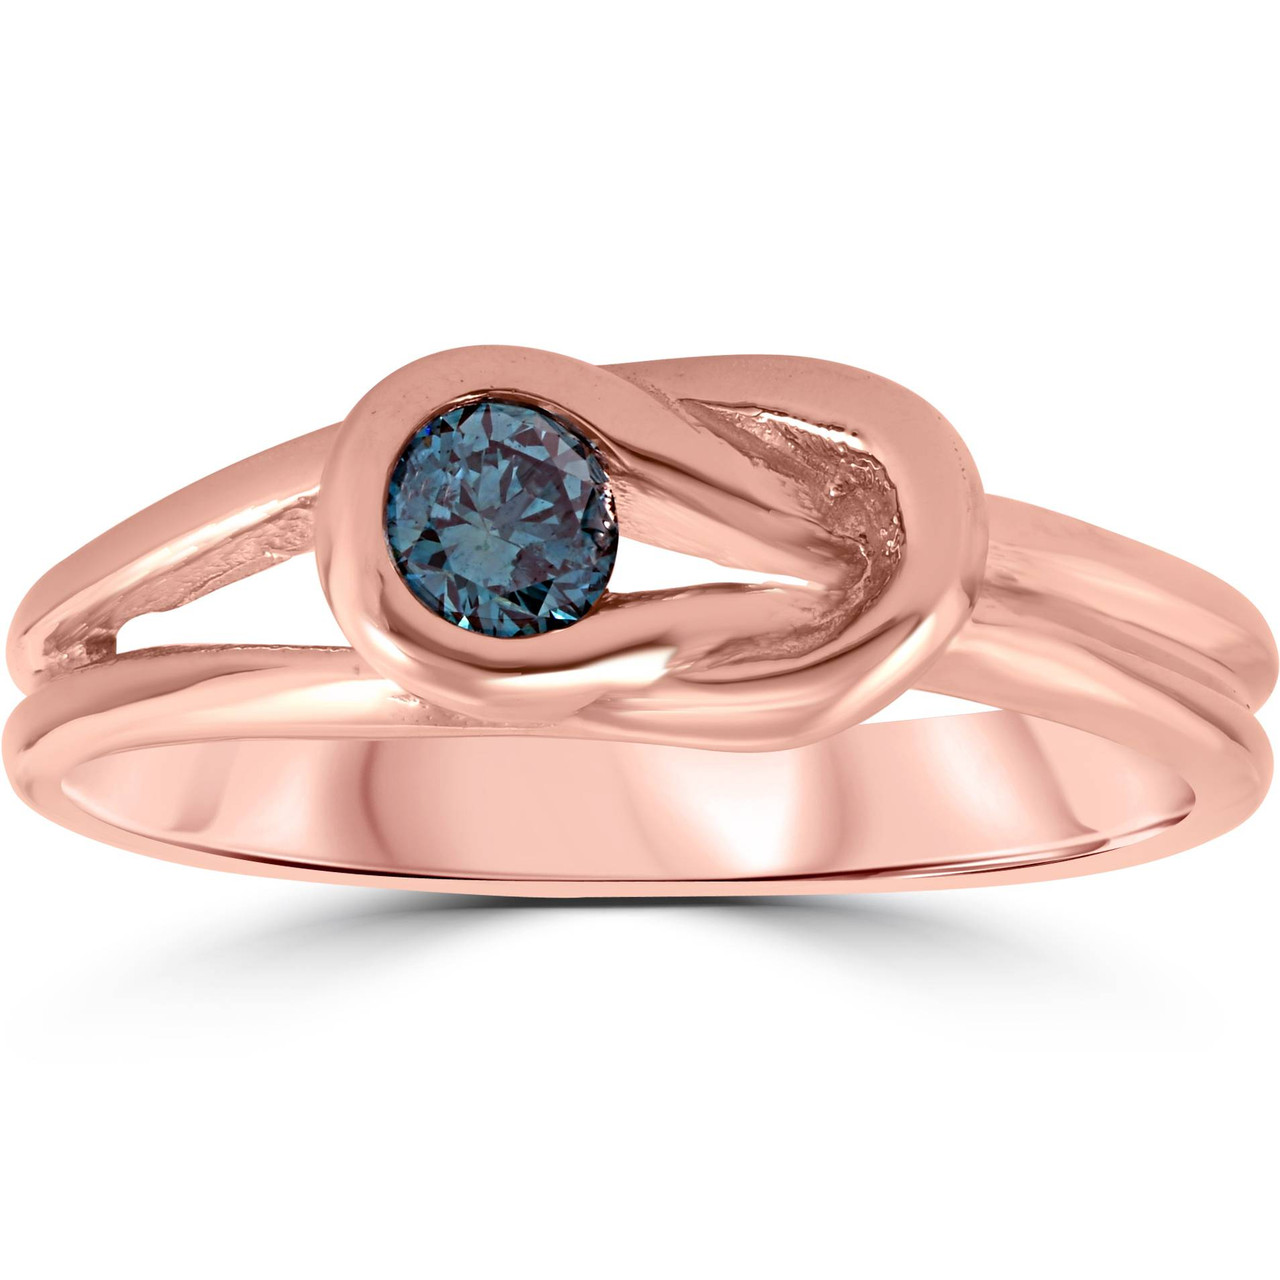 1 5ct Knot Treated Blue Diamond Solitaire Promise Ring 14k Rose Gold